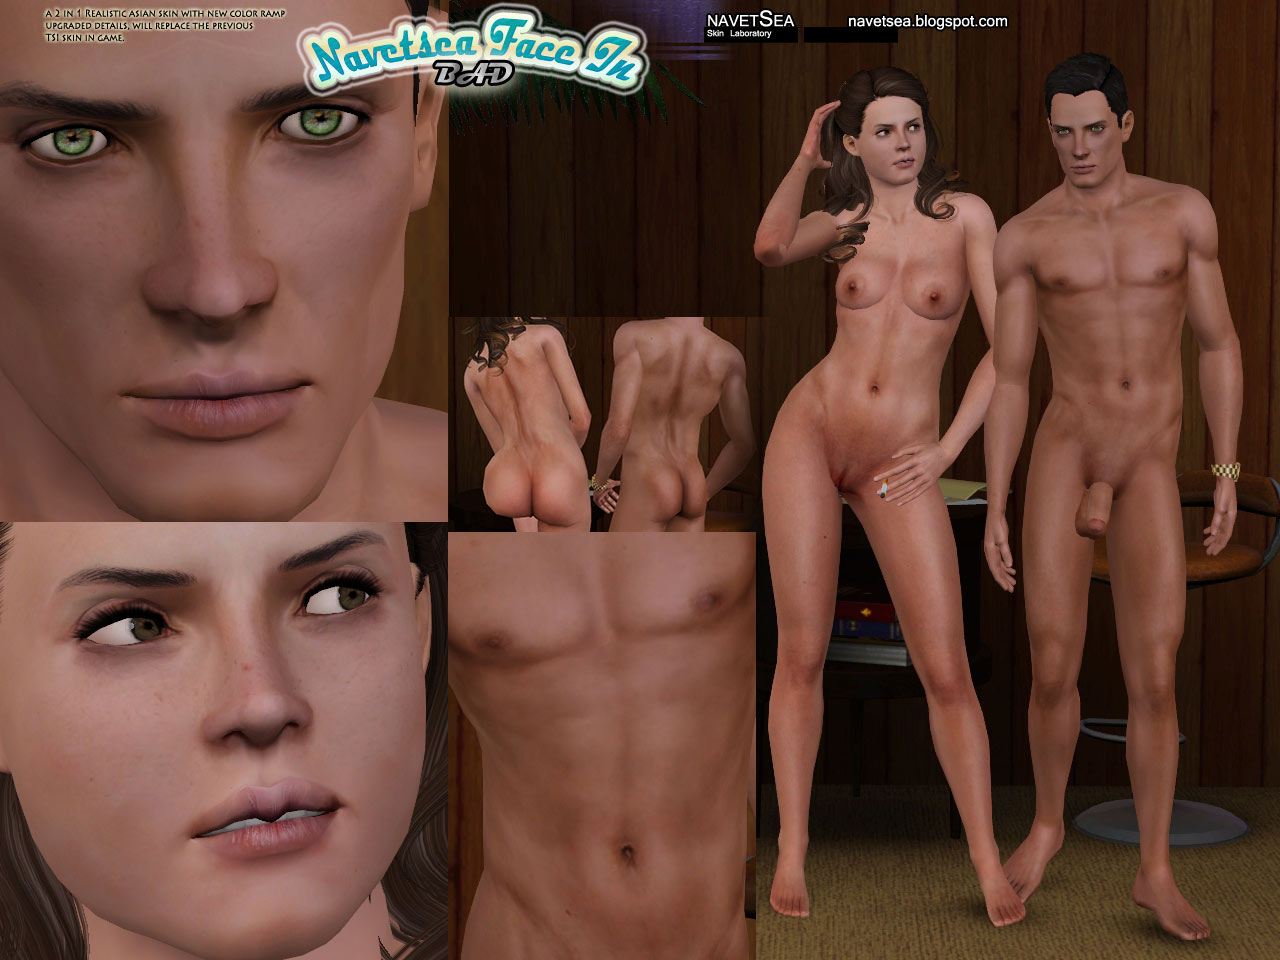 The sims nude patch download anime photos